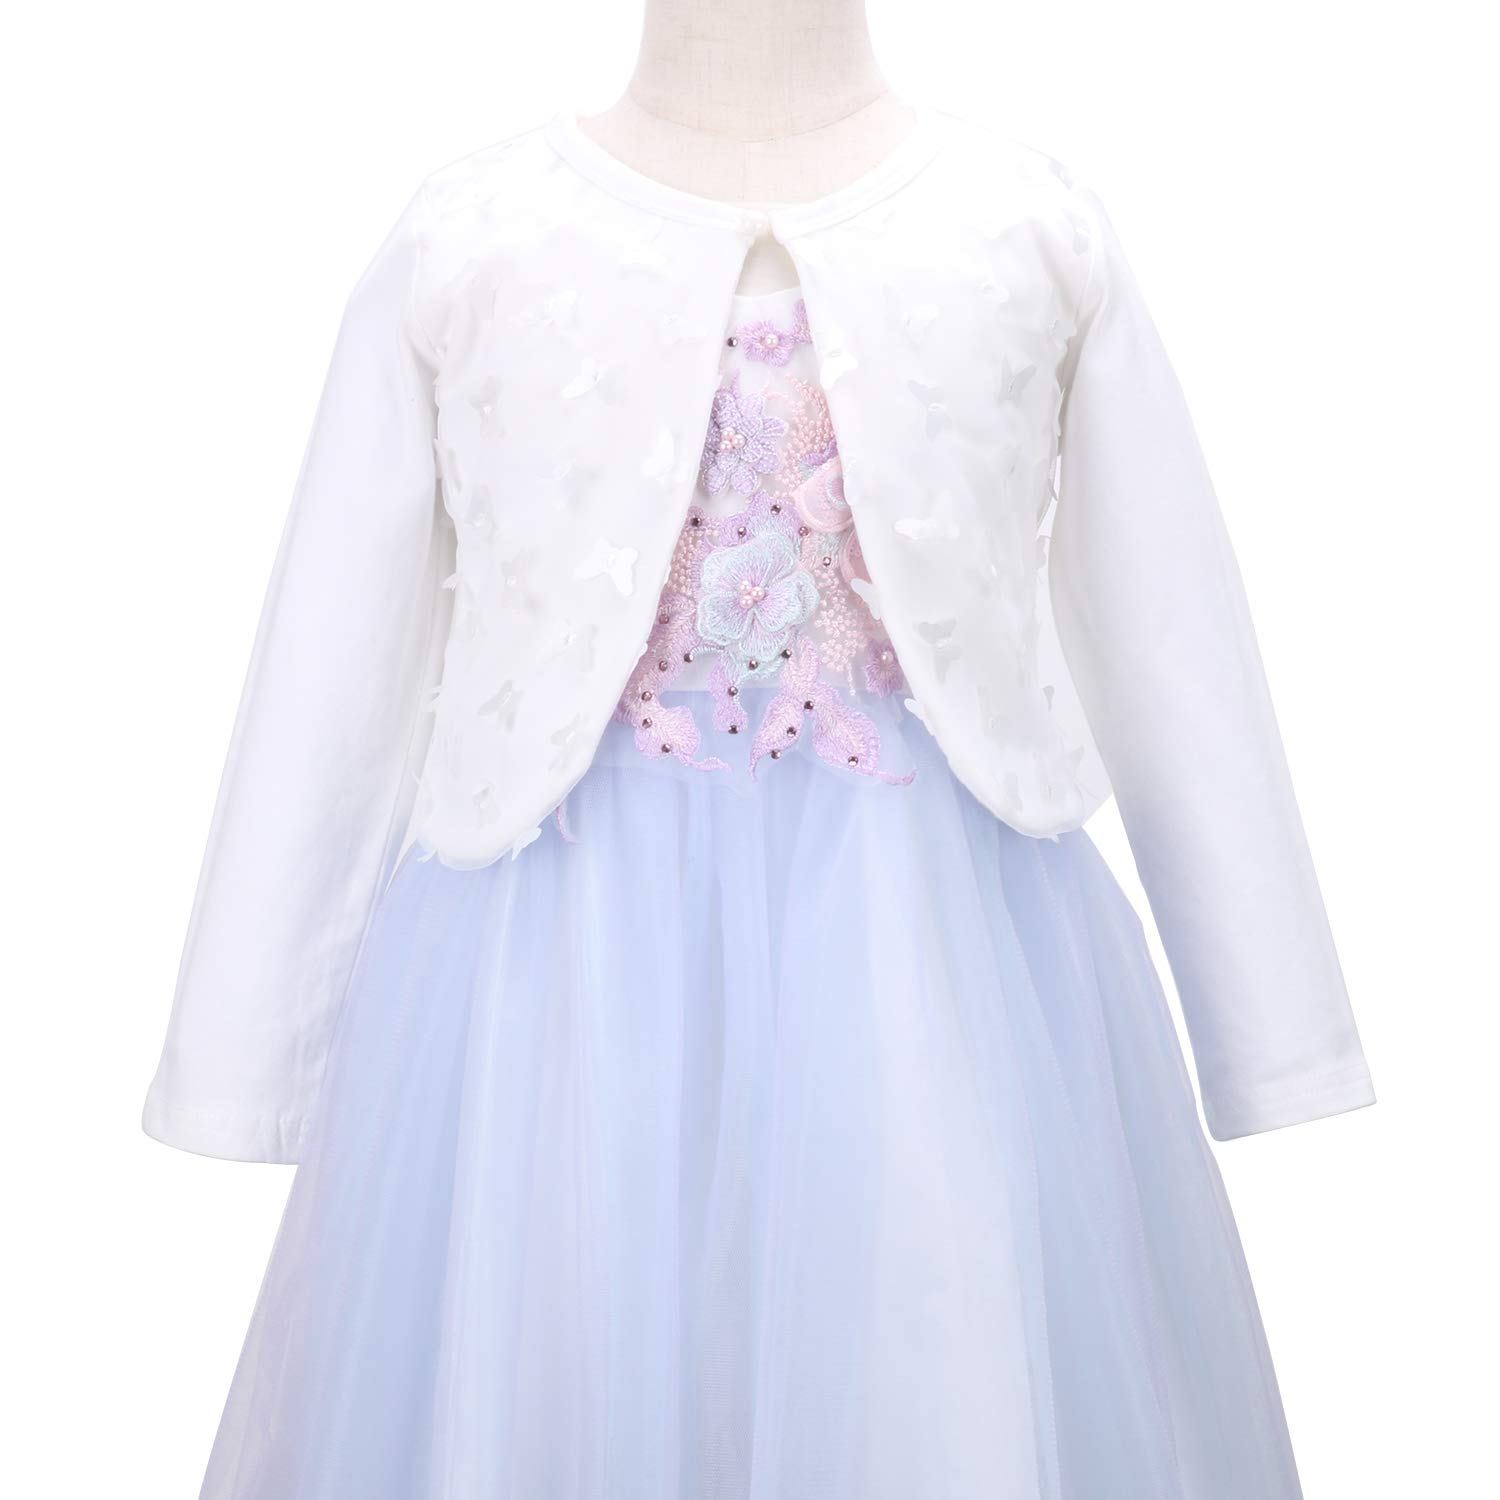 Girls Long Sleeve Cardigan Bolero Jacket 3D Butterfly Short Shrugs Shawl Dress Cover up 1-8Y